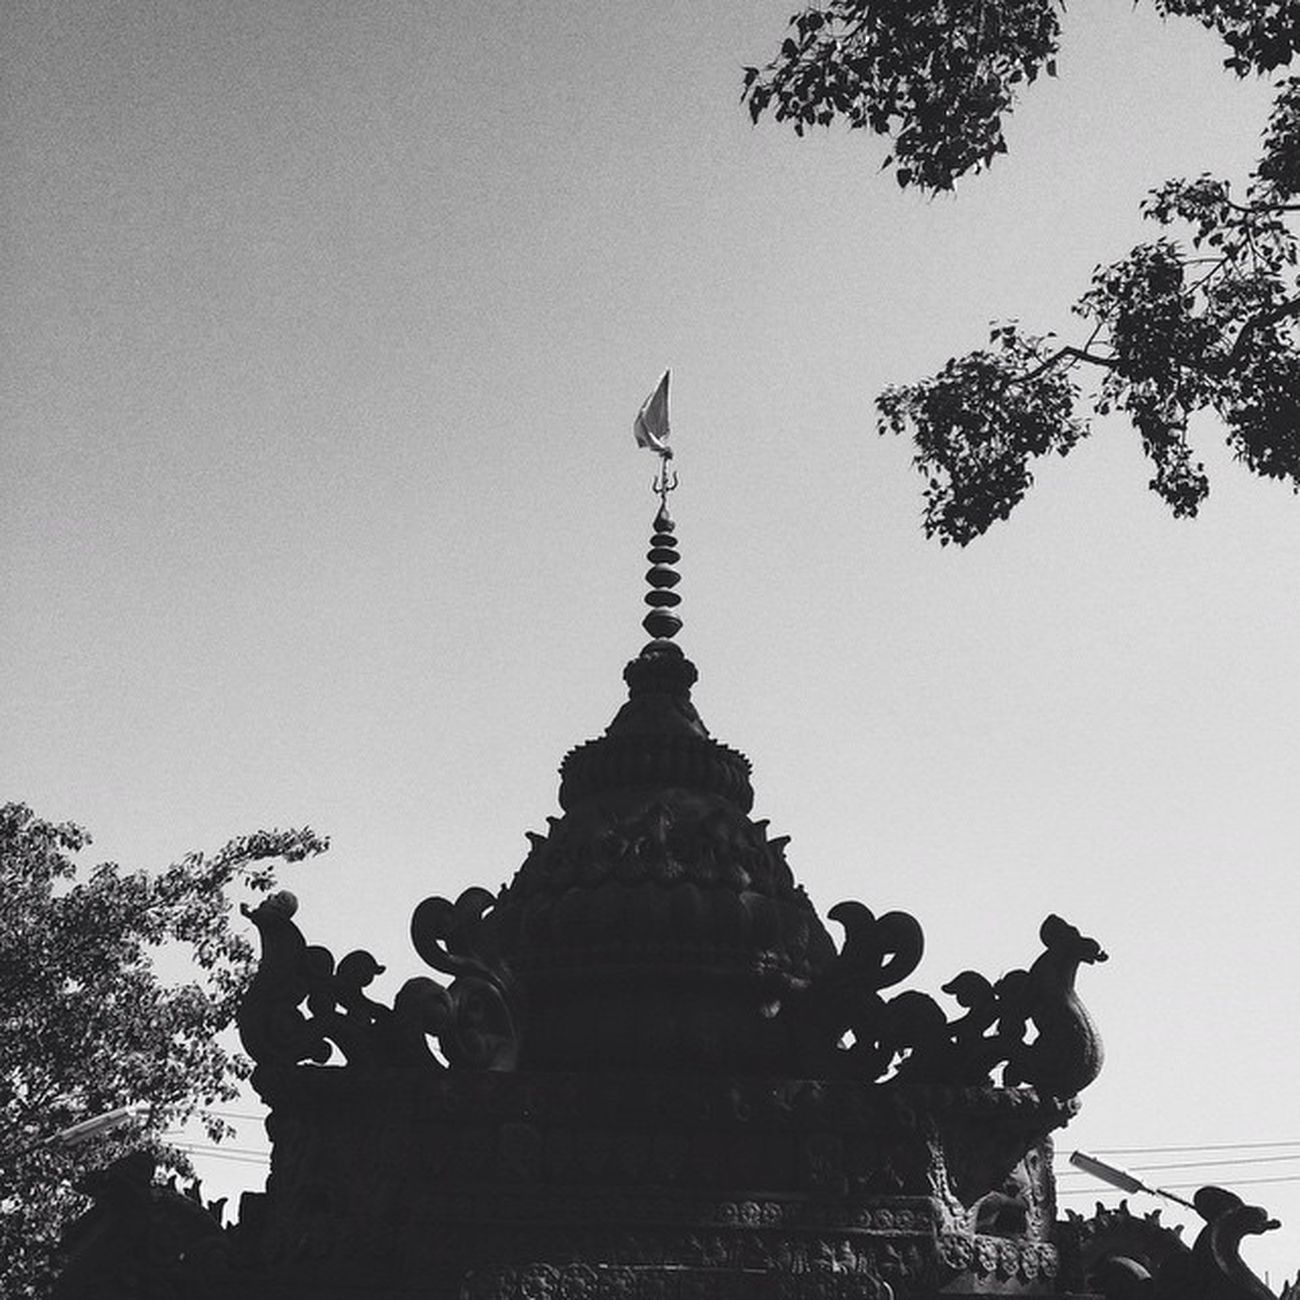 🙏 Temple India India_gram Indiapictures Everydayindia Trishul Tree Sculpture God Holy Silhouette Shadow Blackandwhite Bnw Minimal Insta_vibrant Communityfirst Whilechasingthelight  Mobilemag Iphoneasia Visual_diaries Socality VSCO Vscoindia Justgoshoot